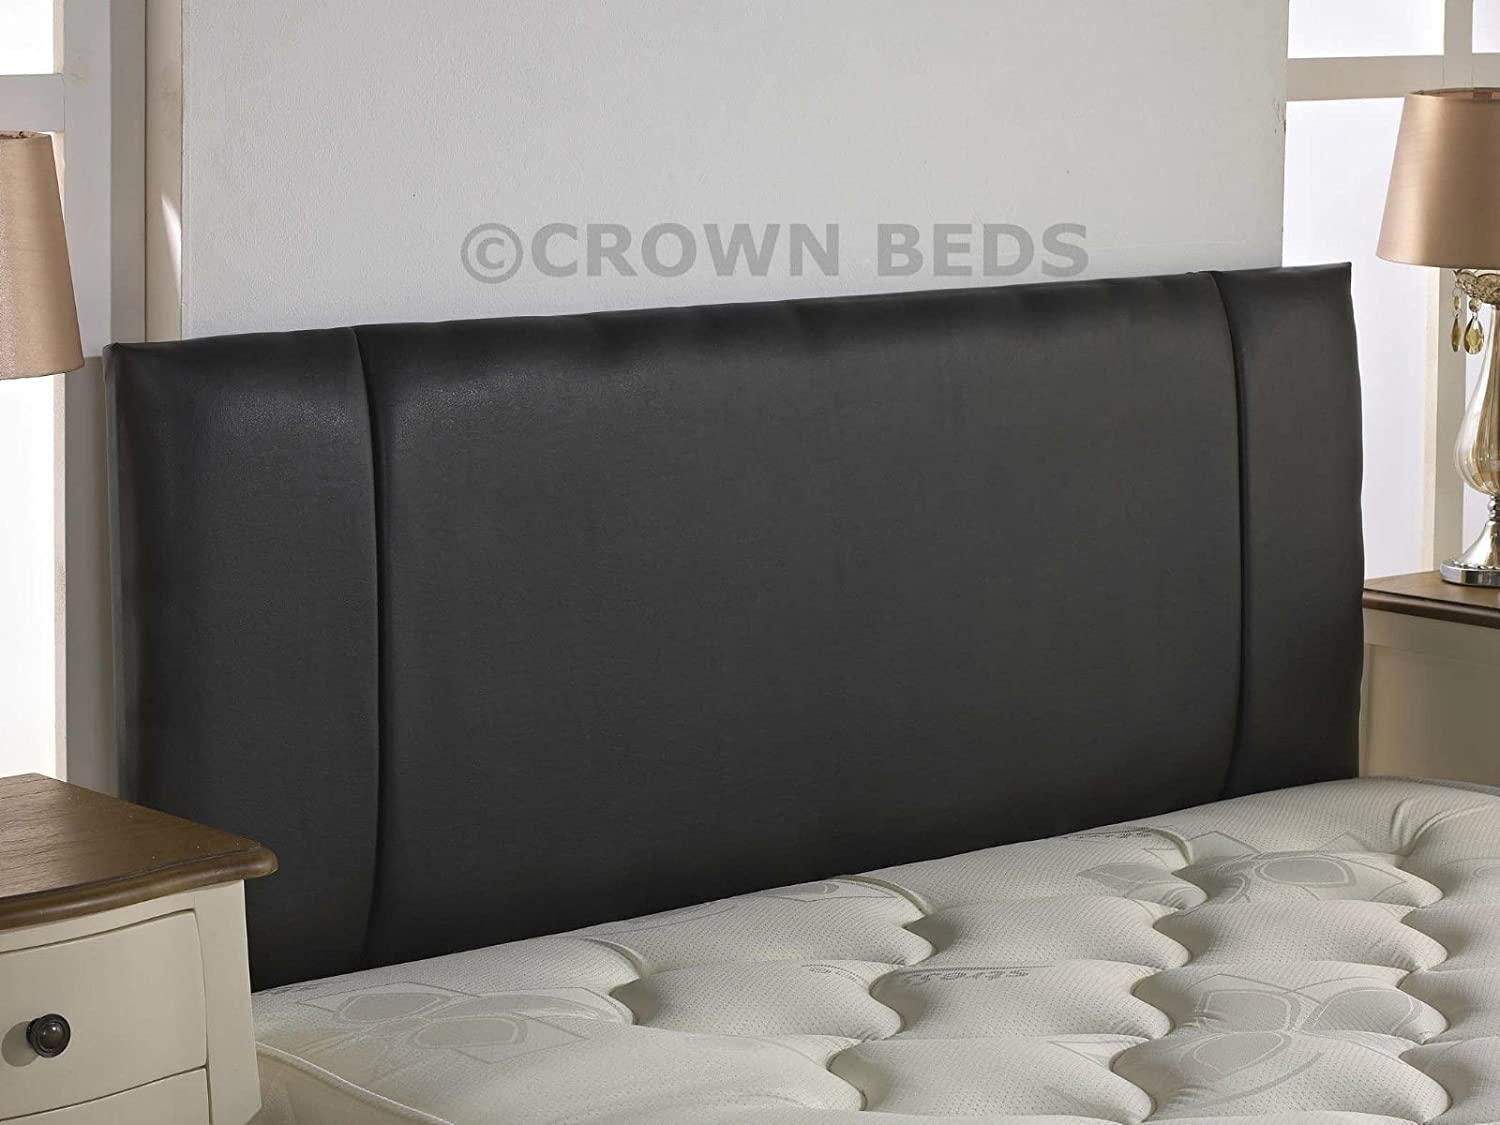 CROWNBEDSUK QUALITY FAUX LEATHER PORTOBELLO HEADBOARD 2ft6,3ft,4ft,4ft6,5ft,6ft NEW!!!!! (2ft6 small single, black) CROWNBEDSUK®